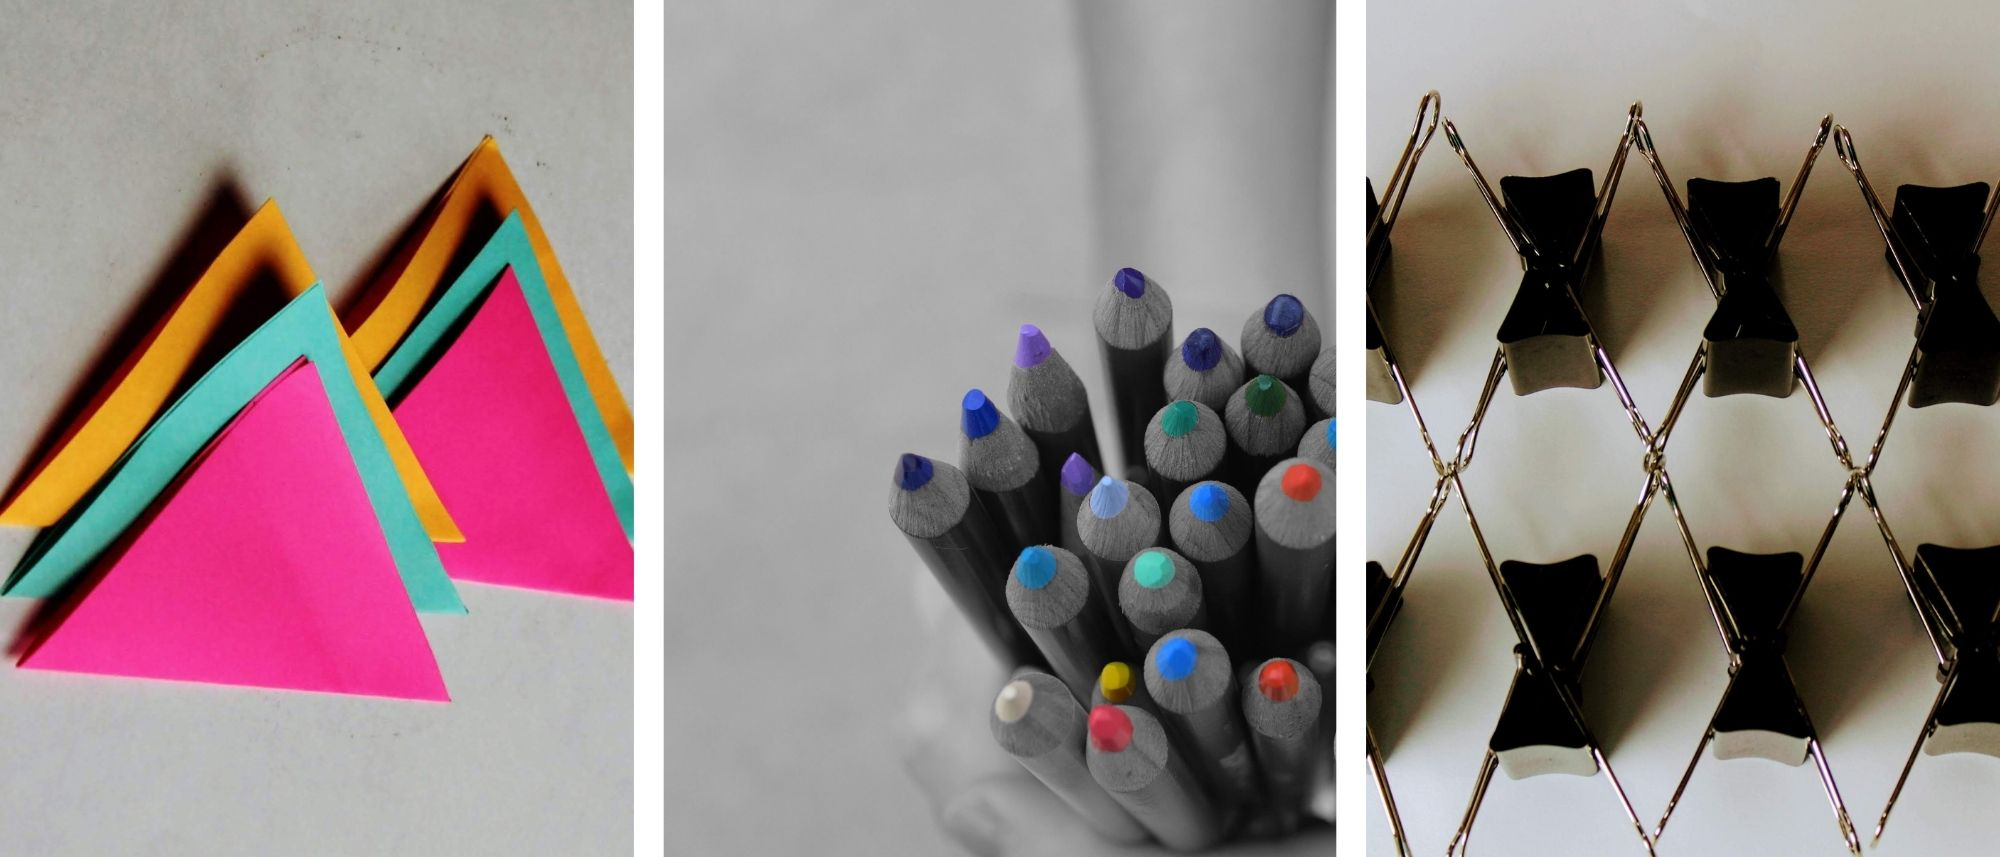 Schools of Choice collage Banner - Triangle pieces of paper, girl holding colored pencils and binders stacked together in a zig zag pattern